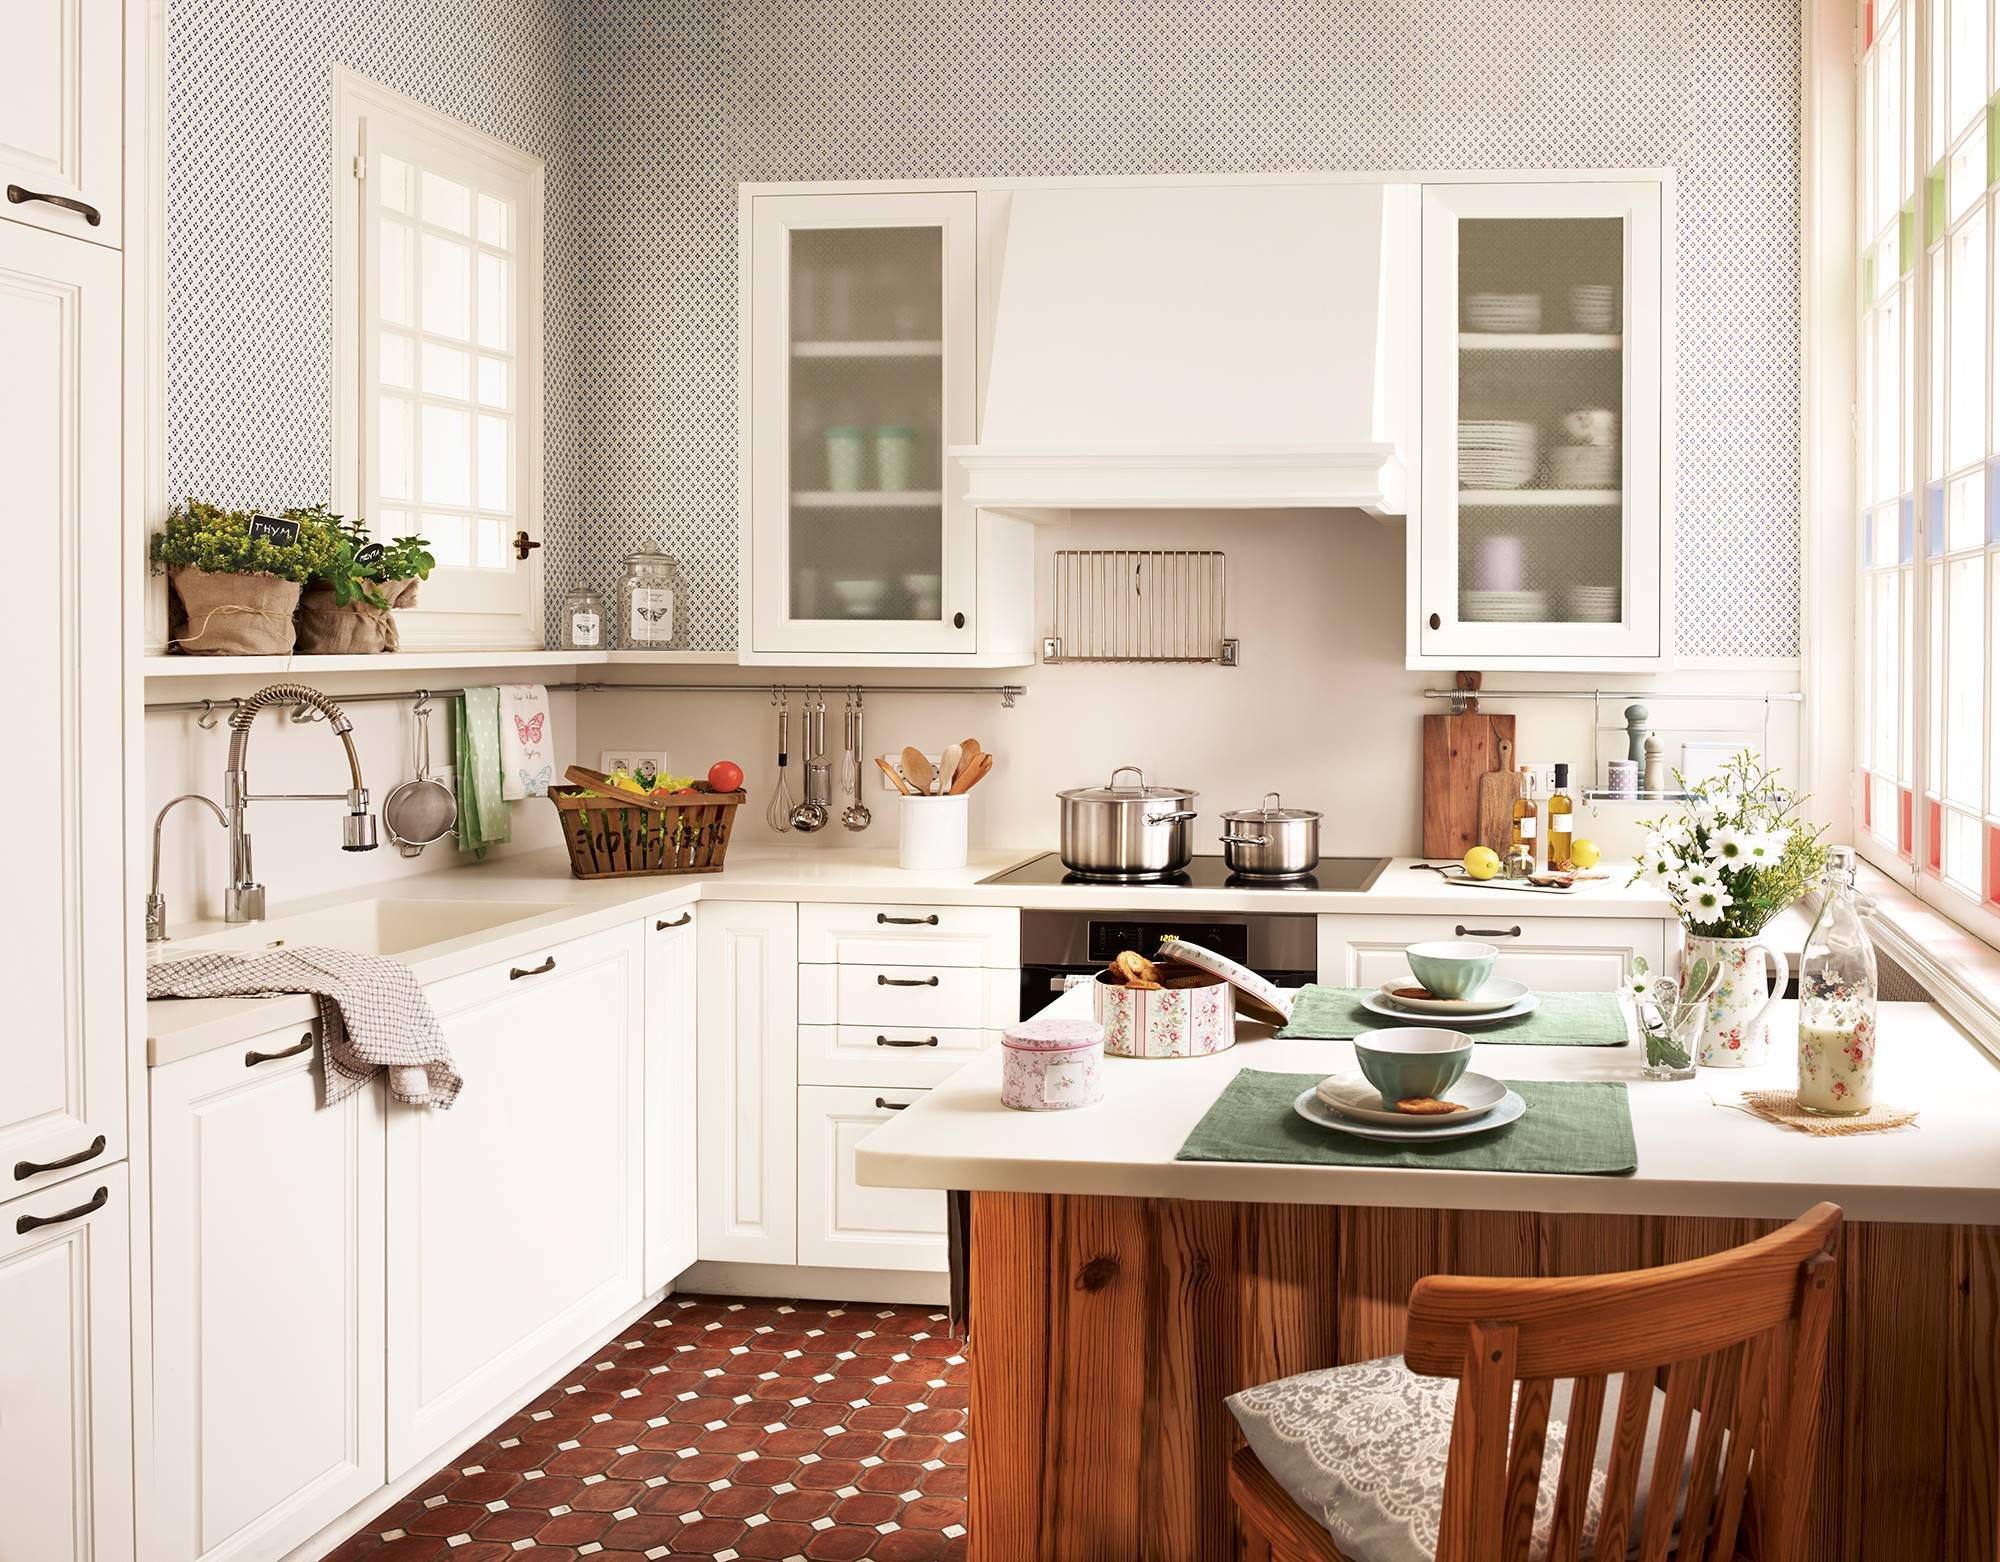 50 cleaning tricks kitchen order 004129771. 45. Use the Marie Kondo method to gain order in the kitchen